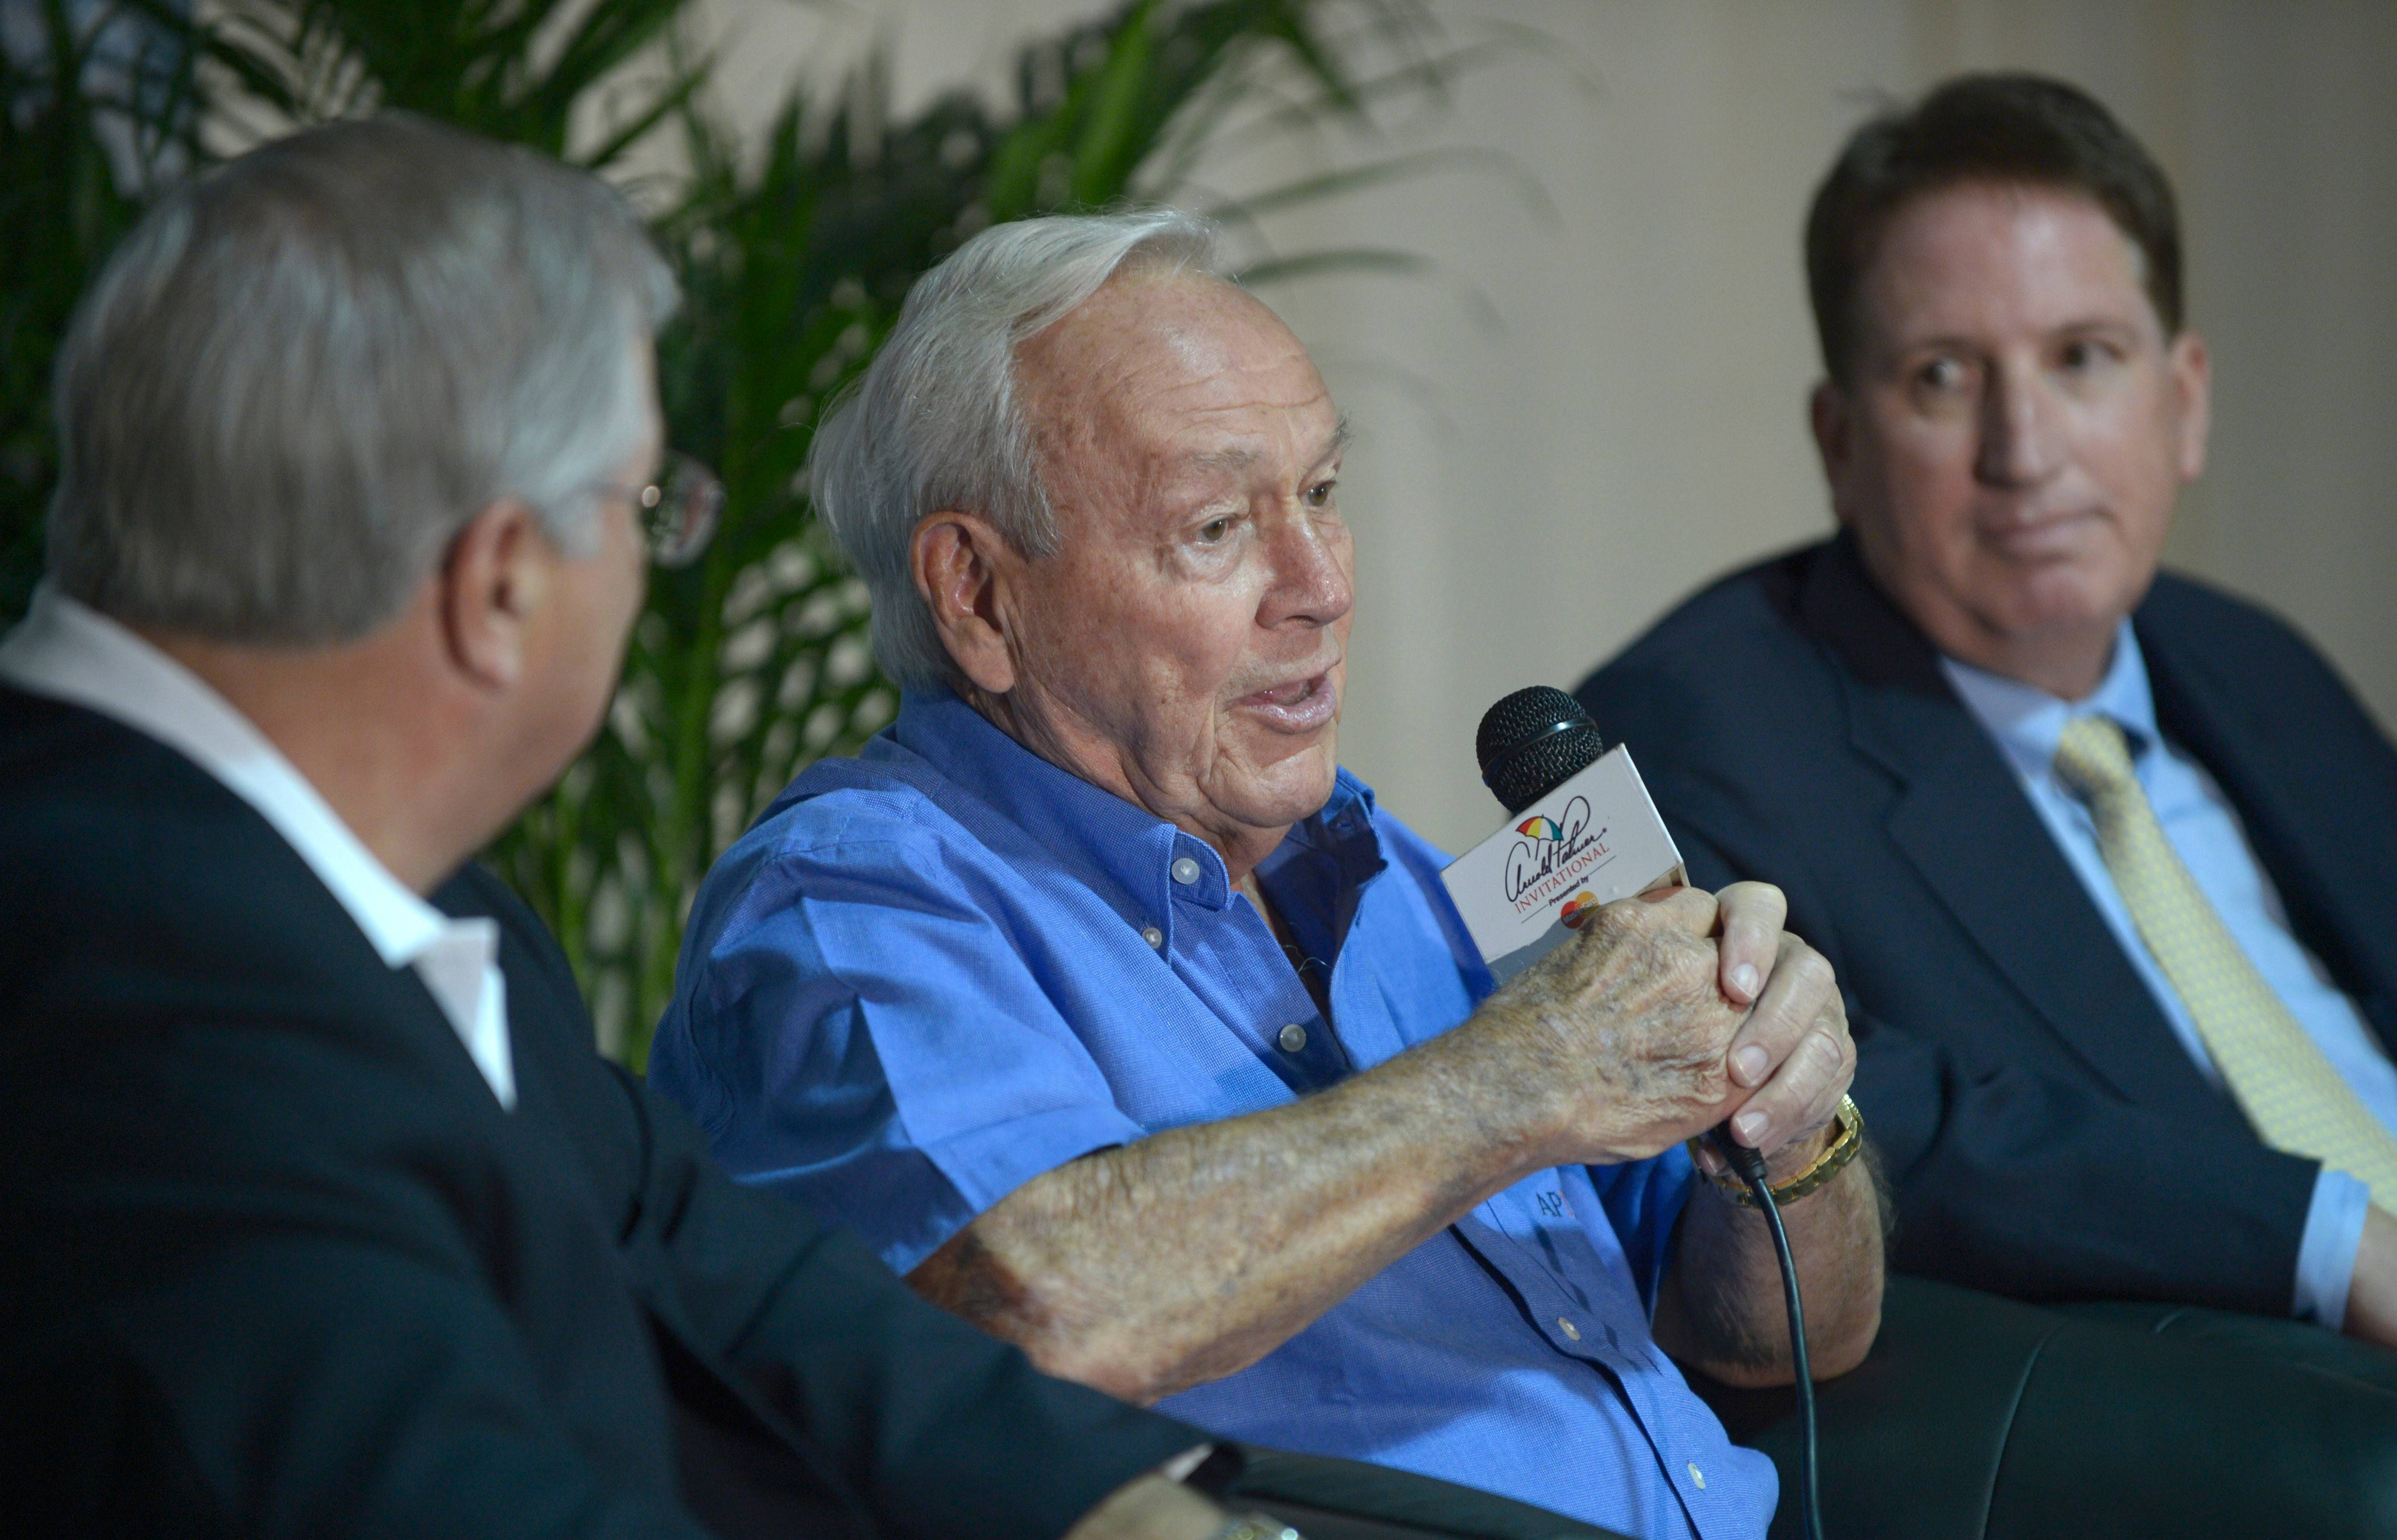 PNC Financial Services Group Chairman & CEO James Rohr, left, and Champions Tour President Mike Stevens, right, listen as Arnold Palmer speaks during a news conference in 2012.